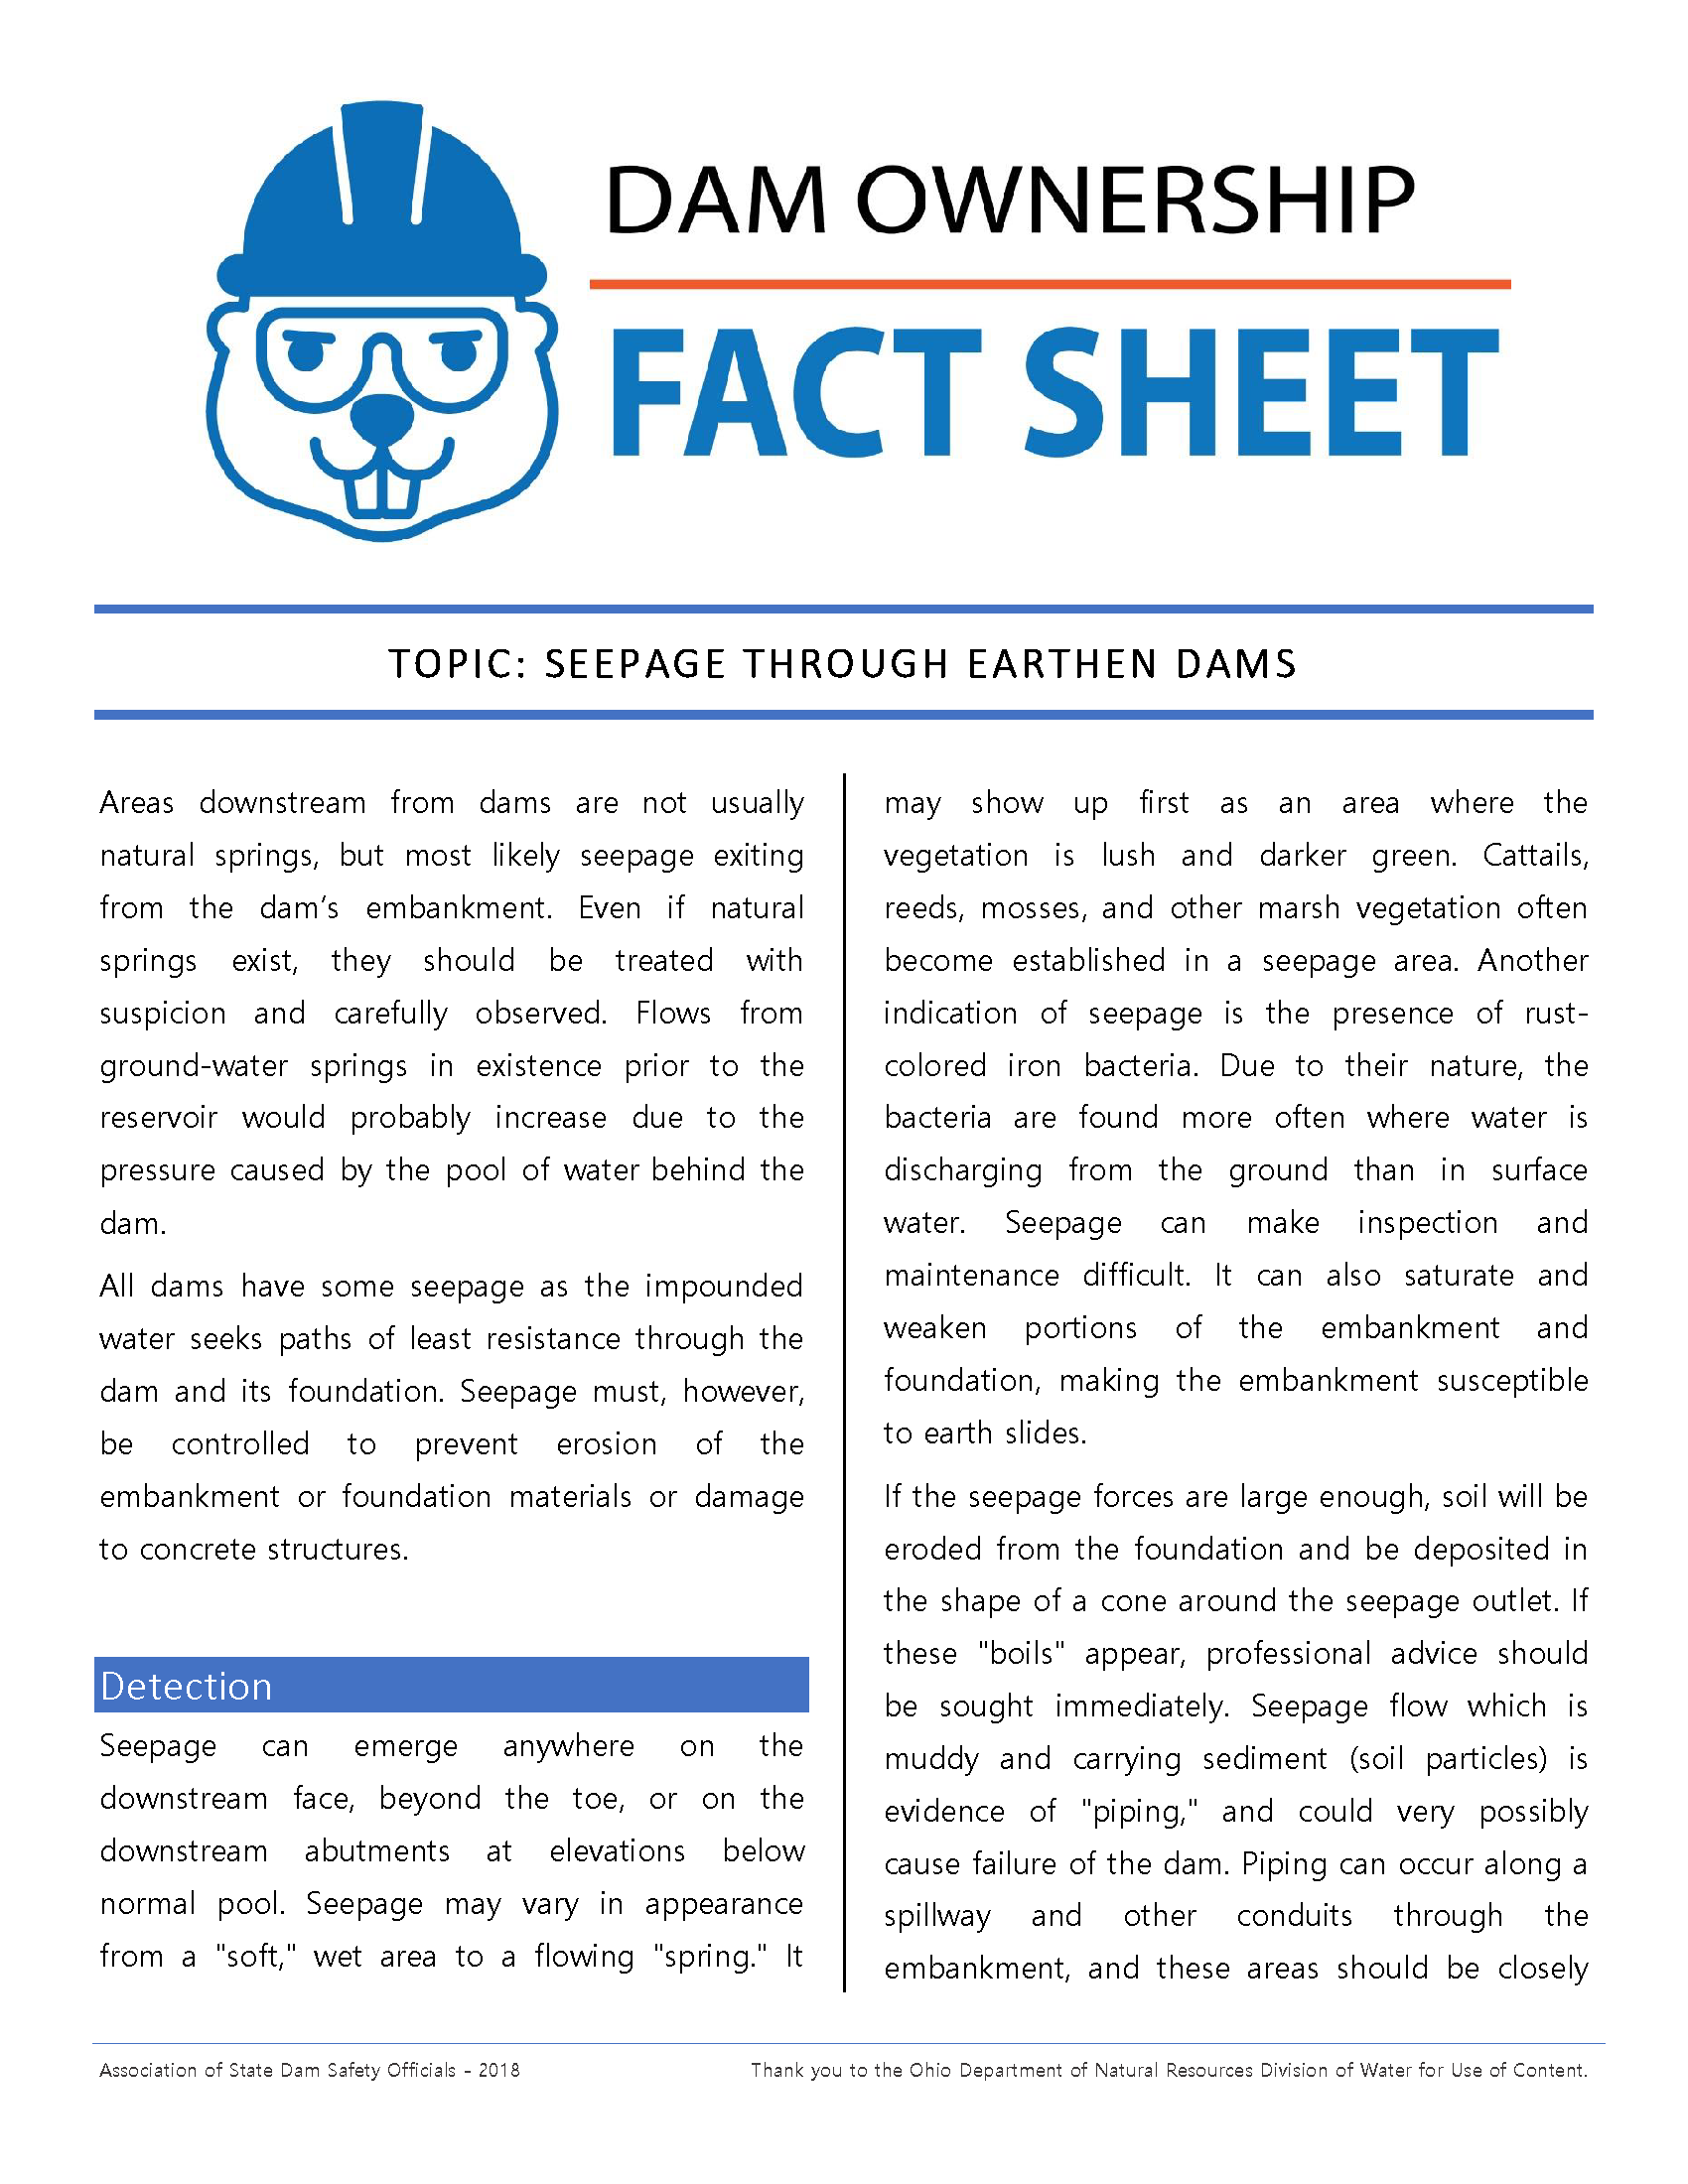 Seepage Through Earth Dams Fact Sheet 2018_Page_1.png